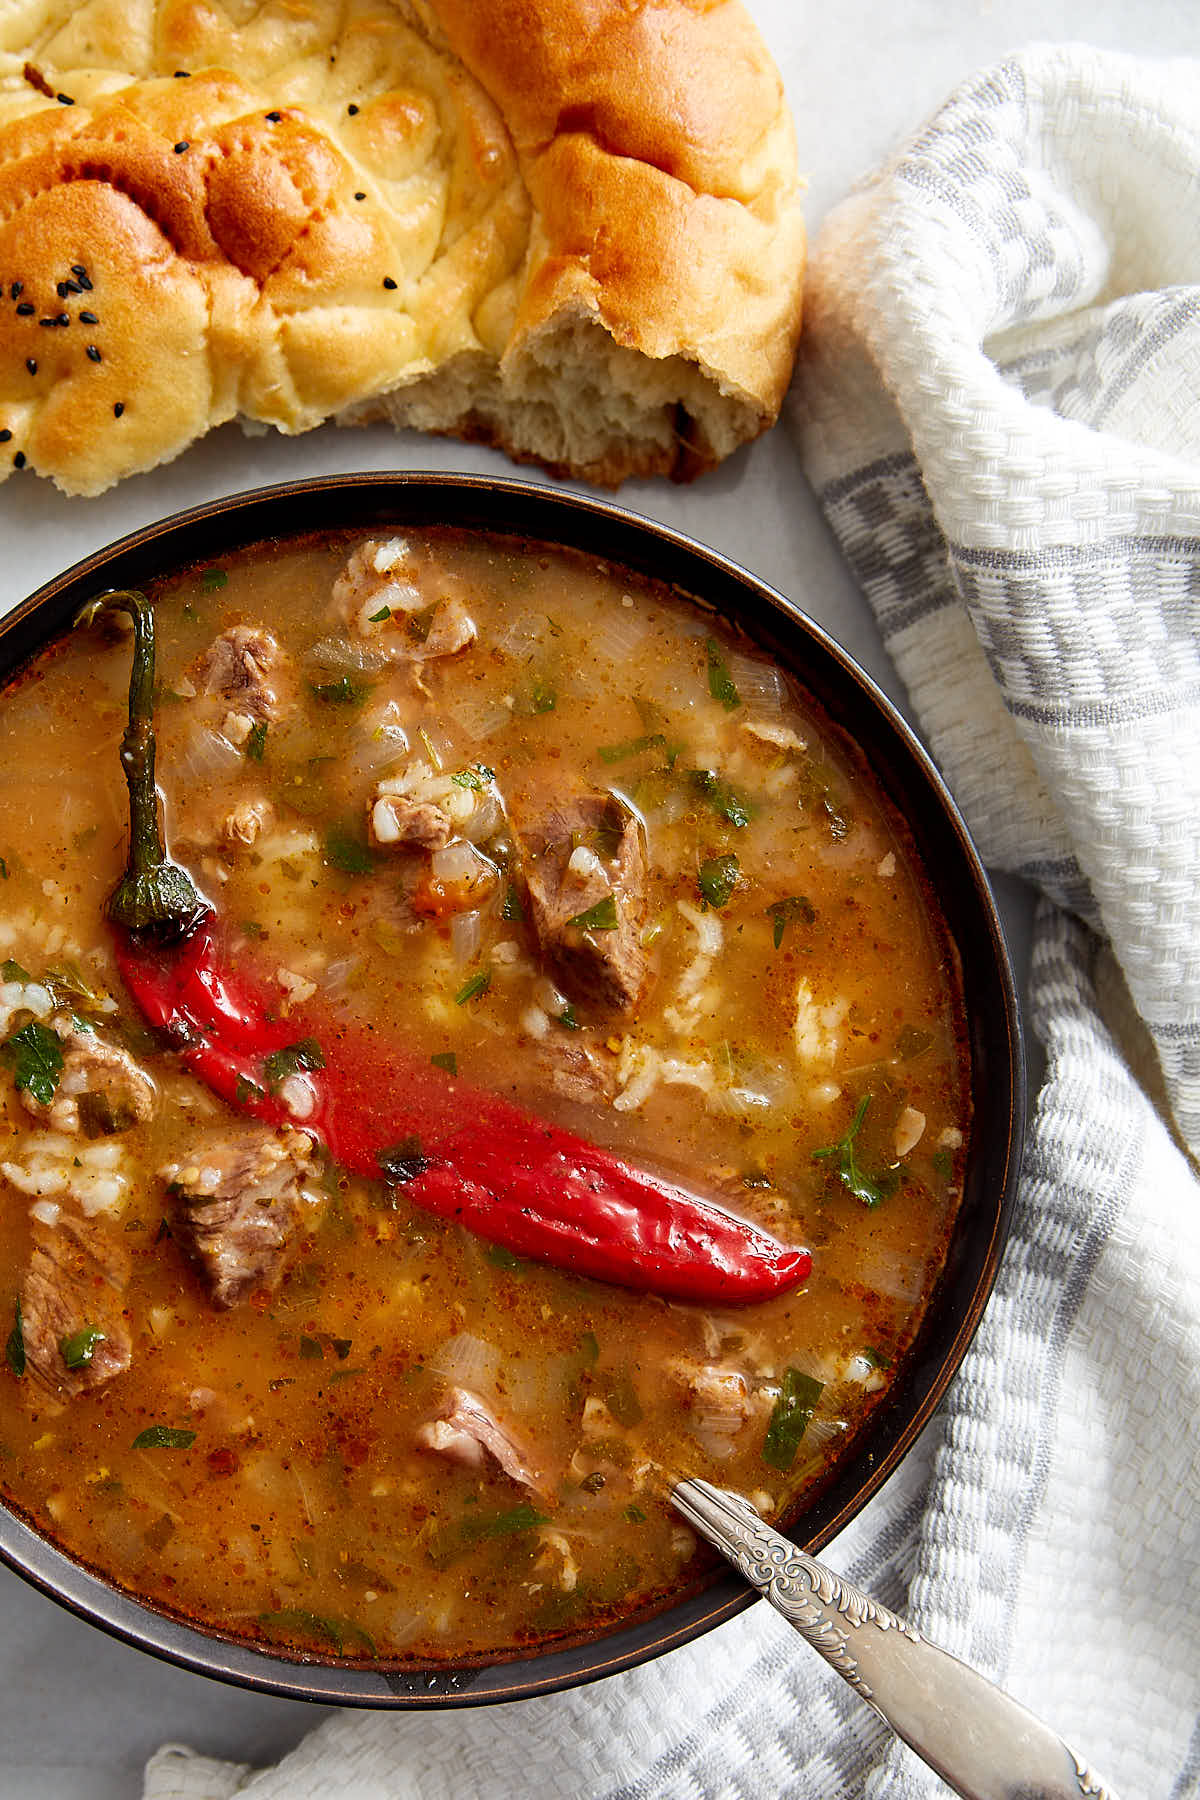 Beef Soup Kharcho - a famous Georgian soup known and loved all over the world. This is a classic version of Kharcho recipe that is absolutely the best. Hearty, beefy and so delicious. A perfectly comforting soup for a cold wintry day. | ifoodblogger.com